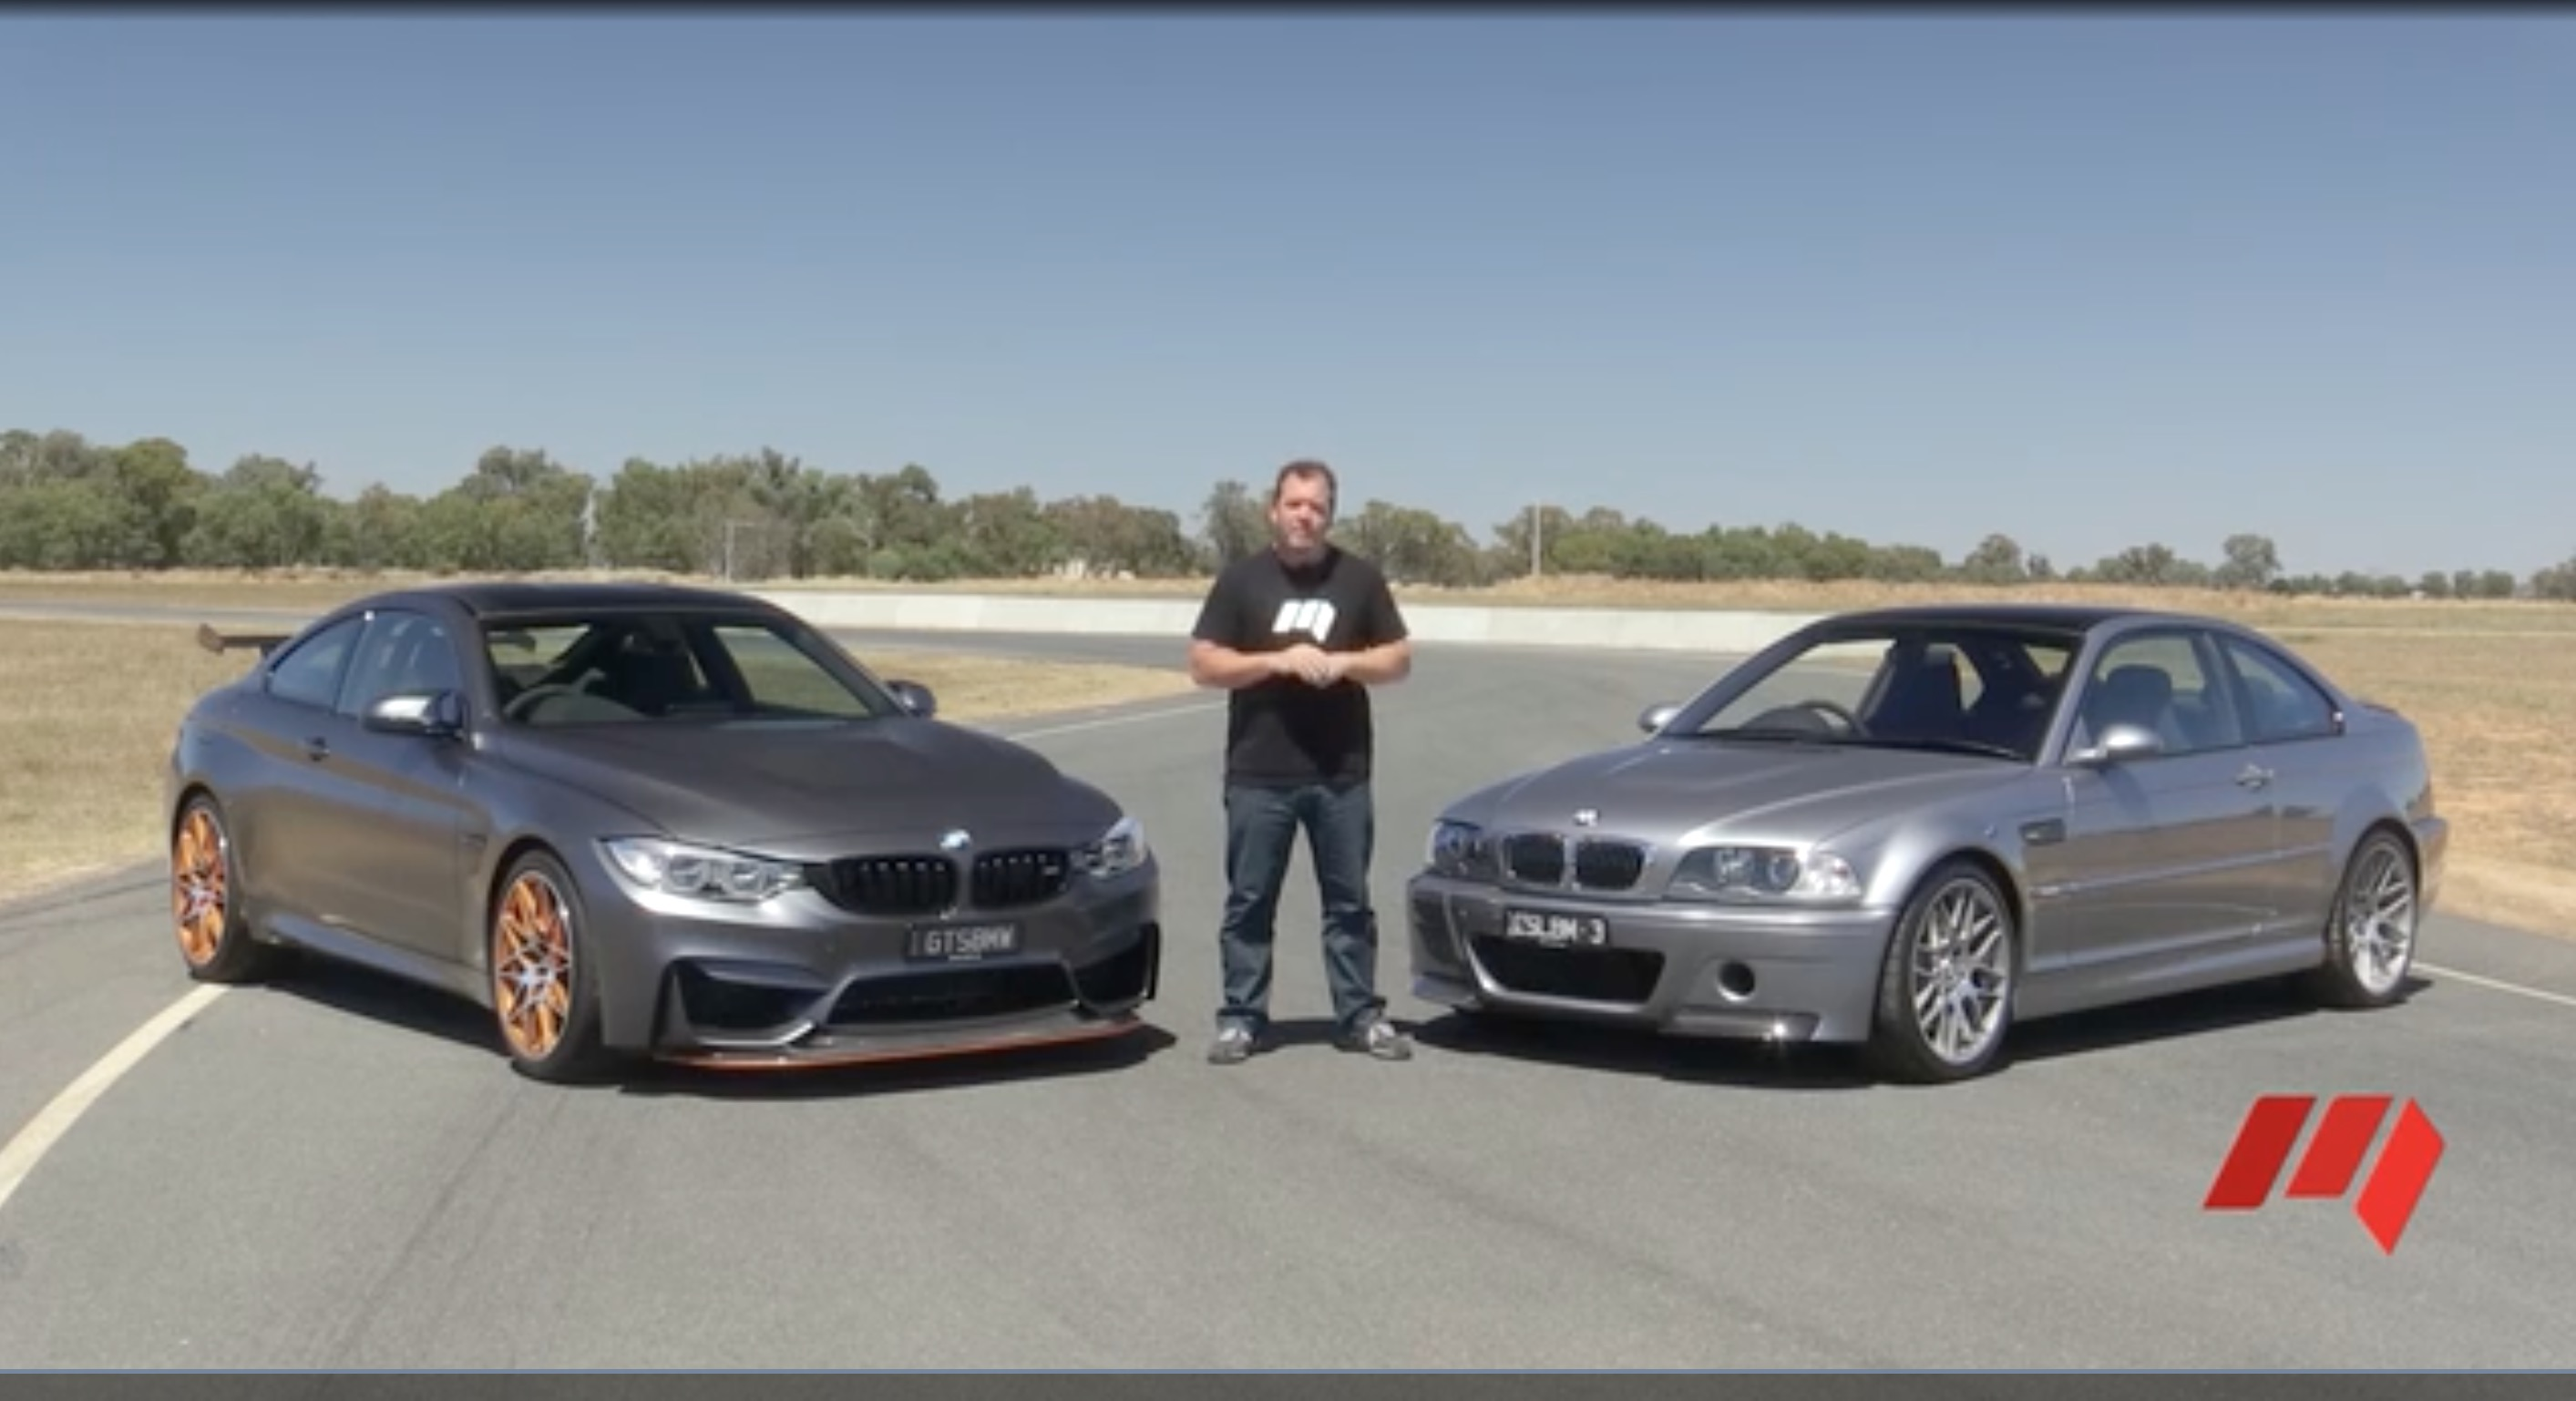 introductions pits new series media at bmw site introduction picks car dazzles blue